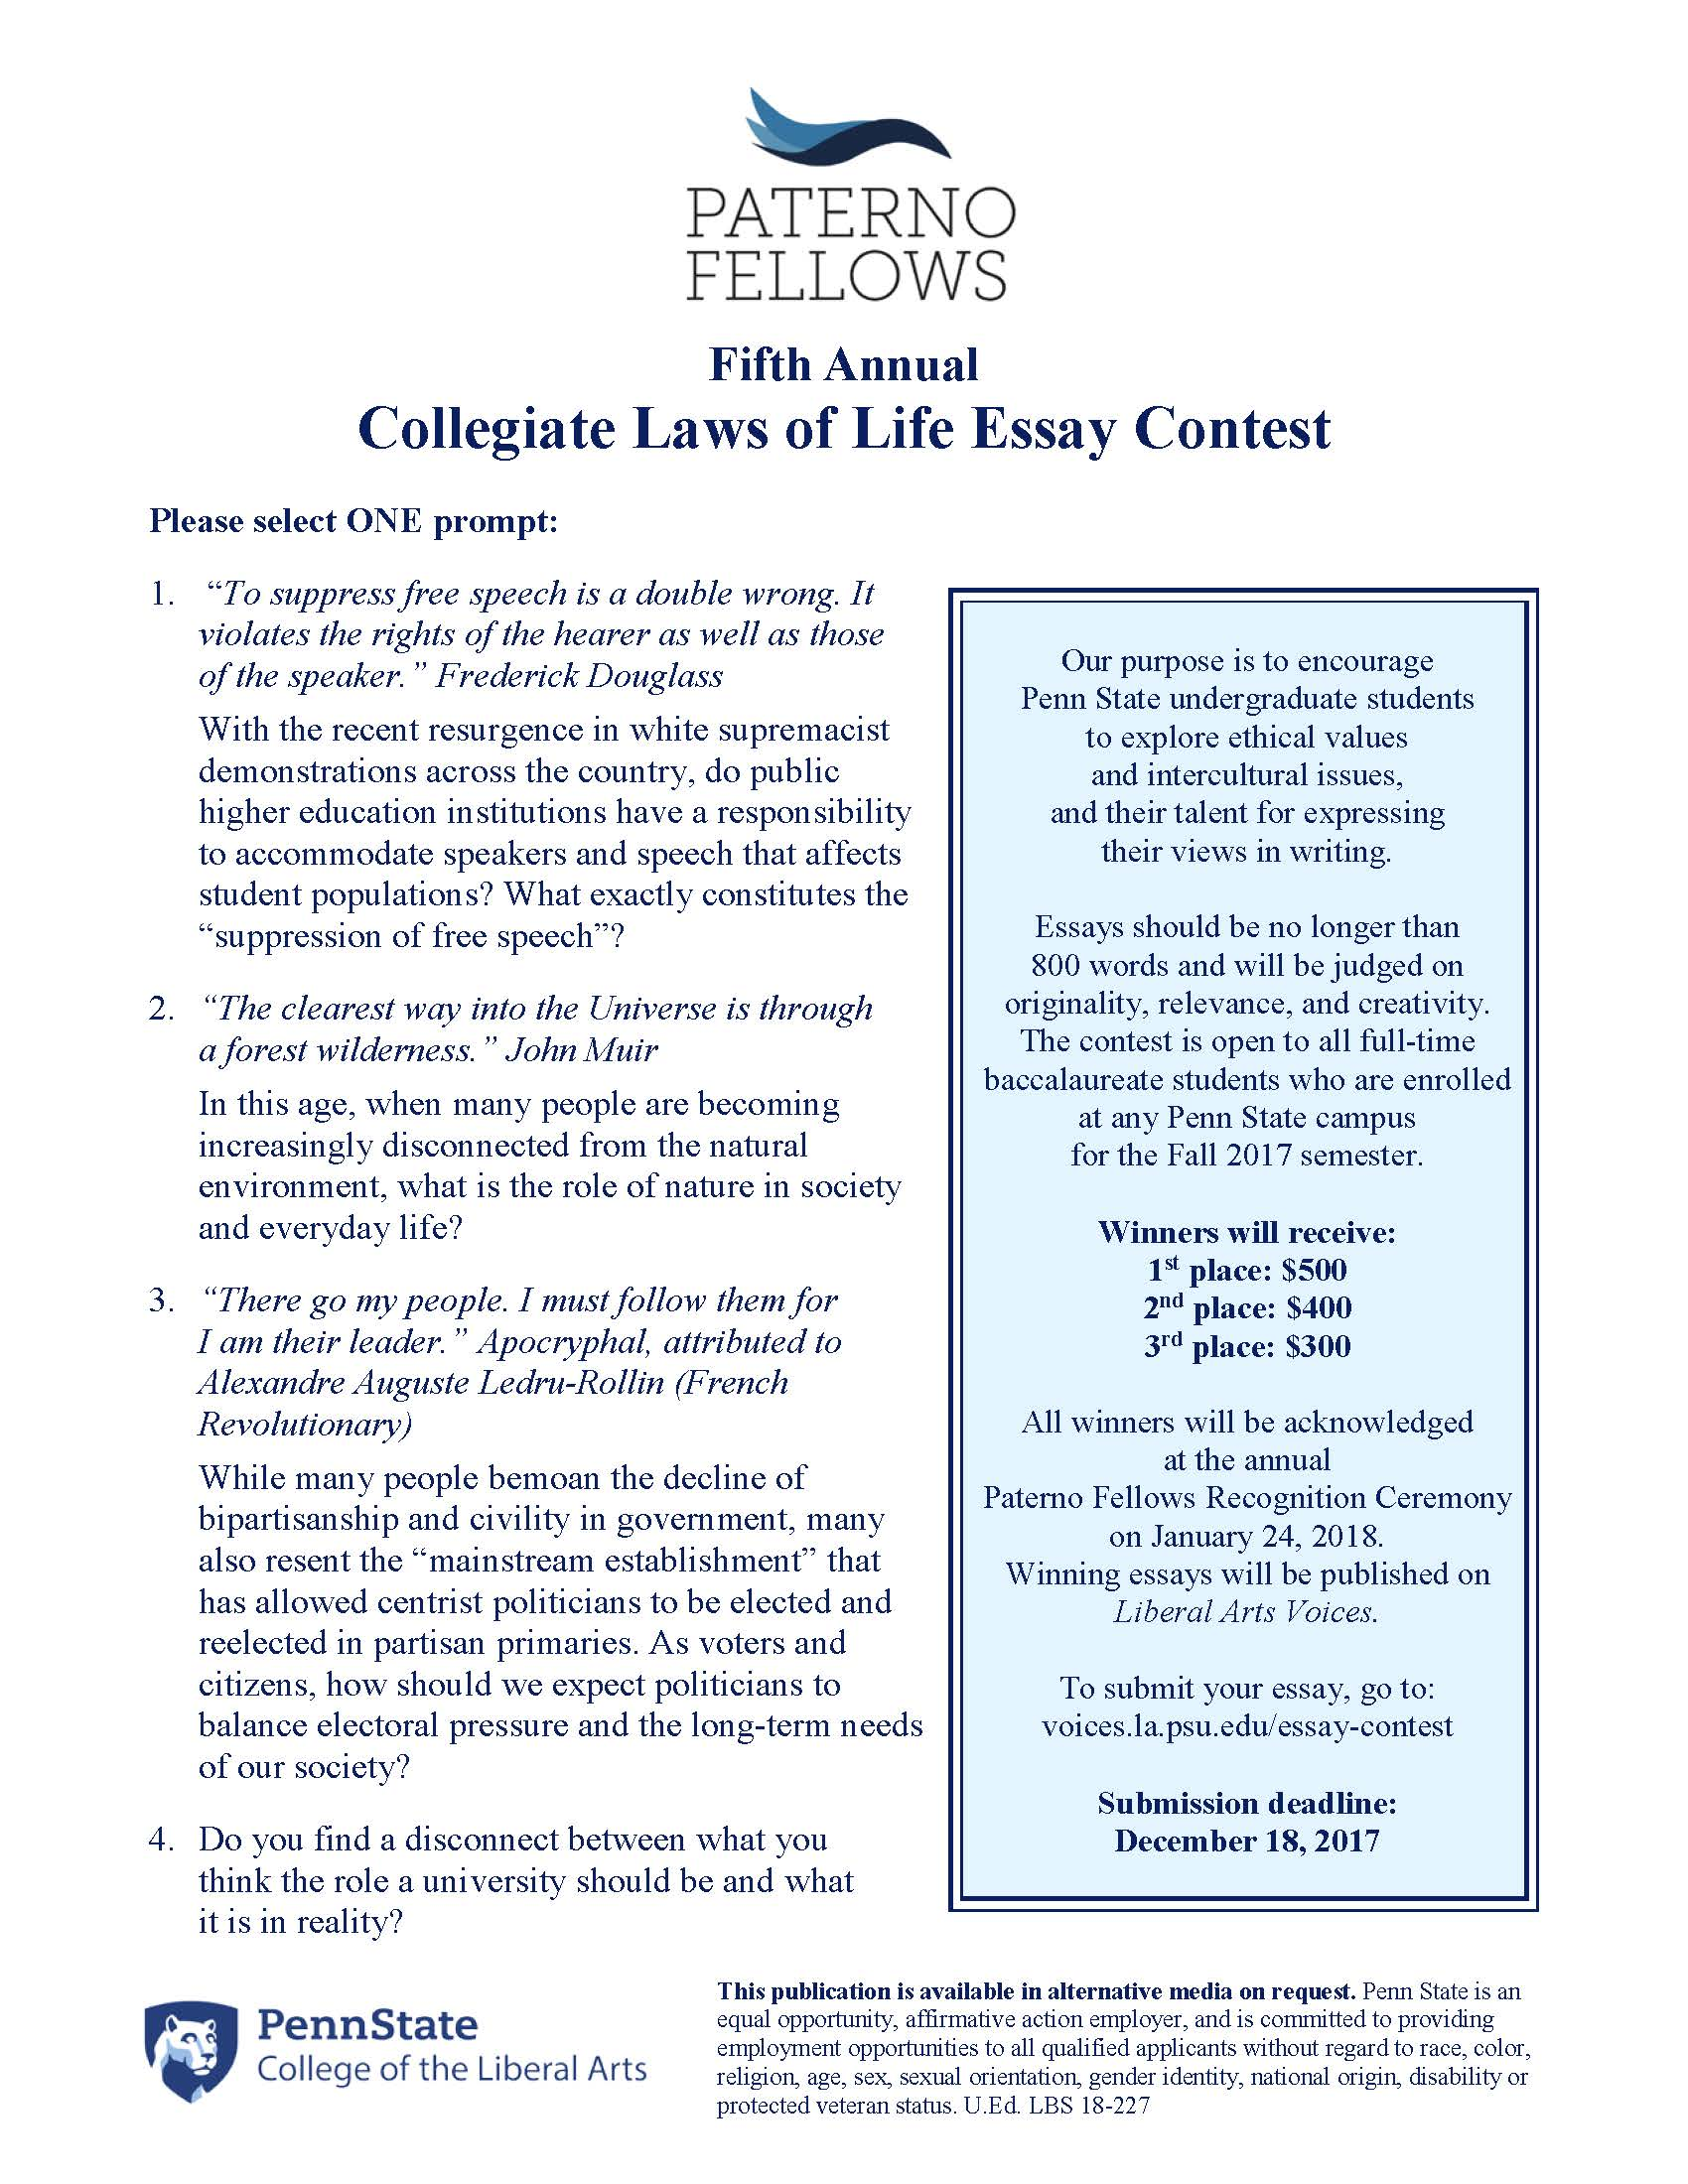 014 Clol Essay Flyer 2i7pwcs Example Law Of Awesome Life Laws Contest Ohio 2016 Competition Bahamas 2018 Full